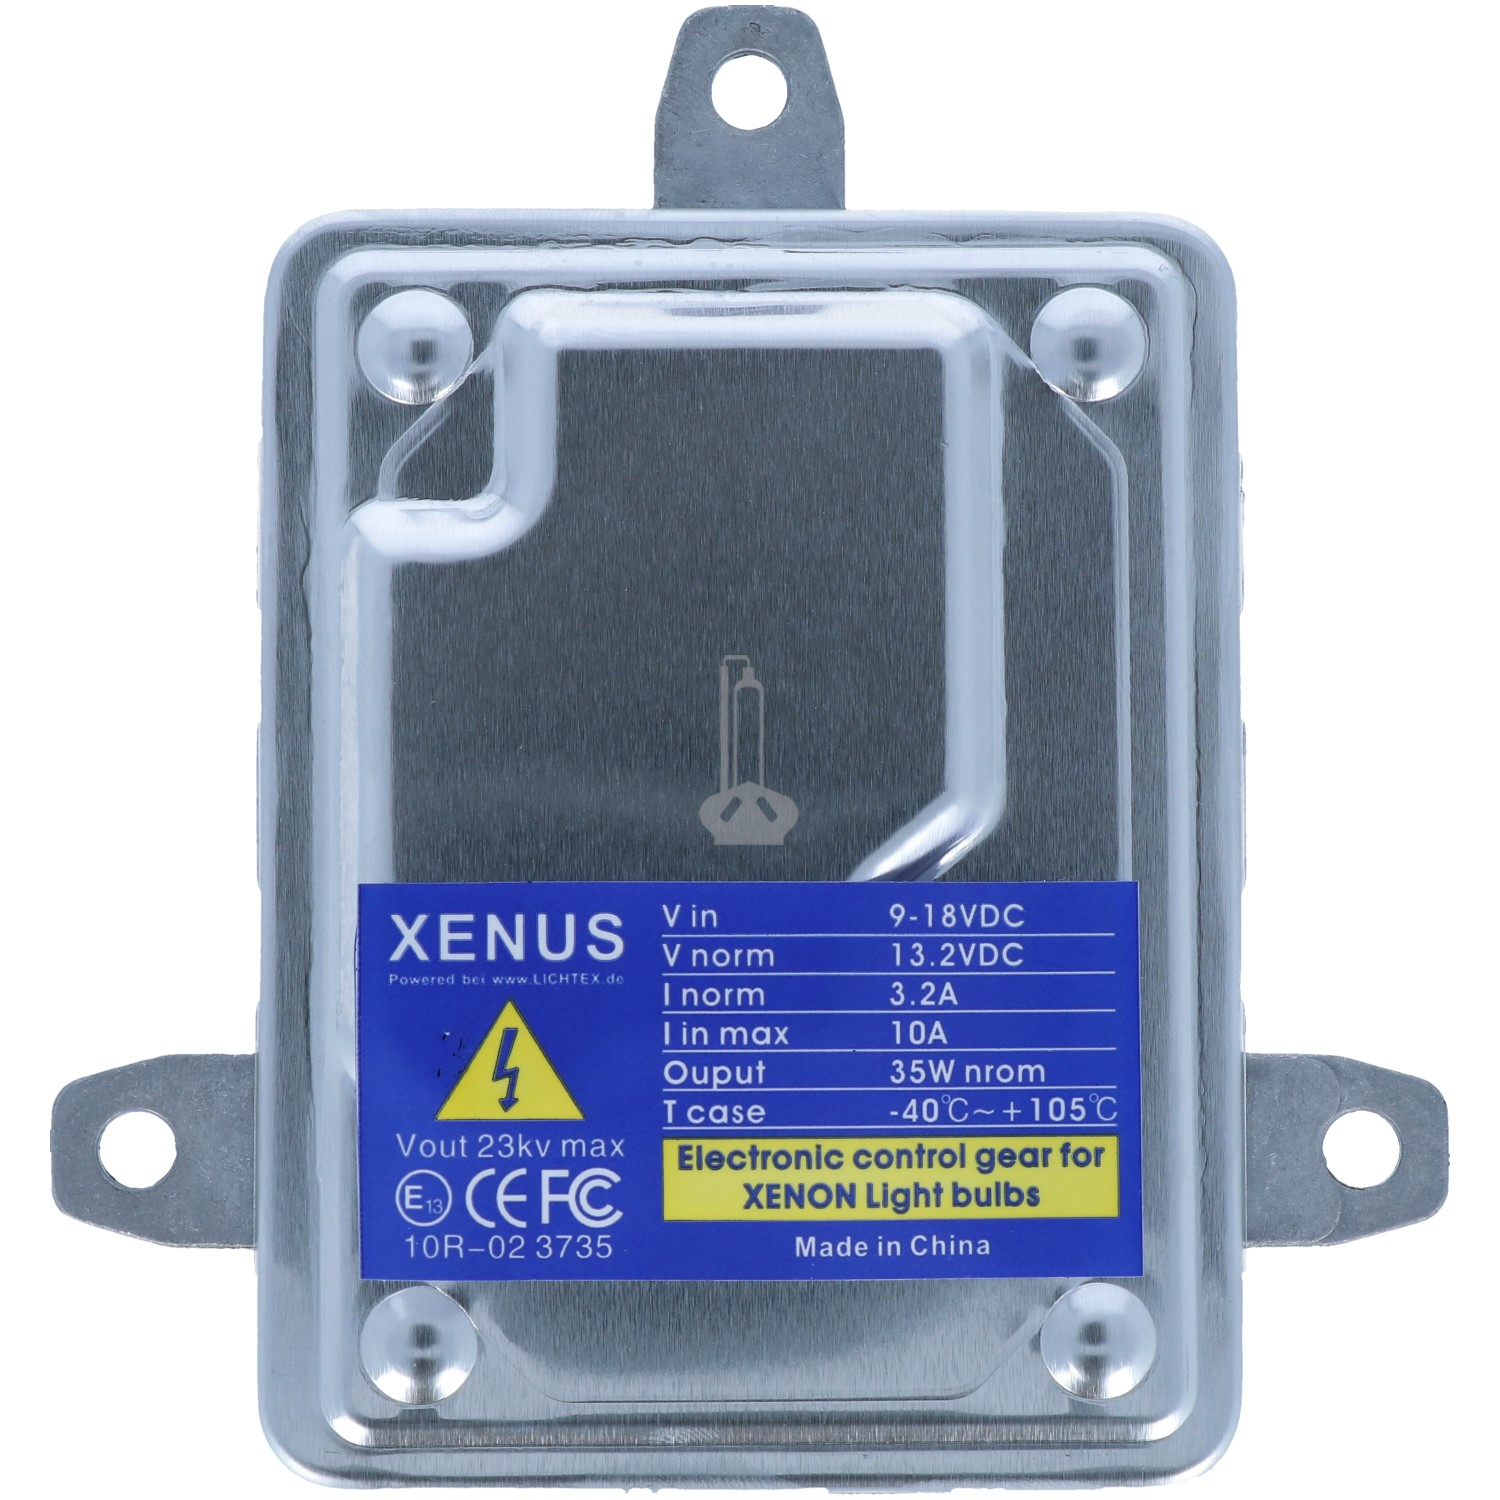 XENUS D1S D1SUNI Xenon Headlight Ballast, Replacement for AL